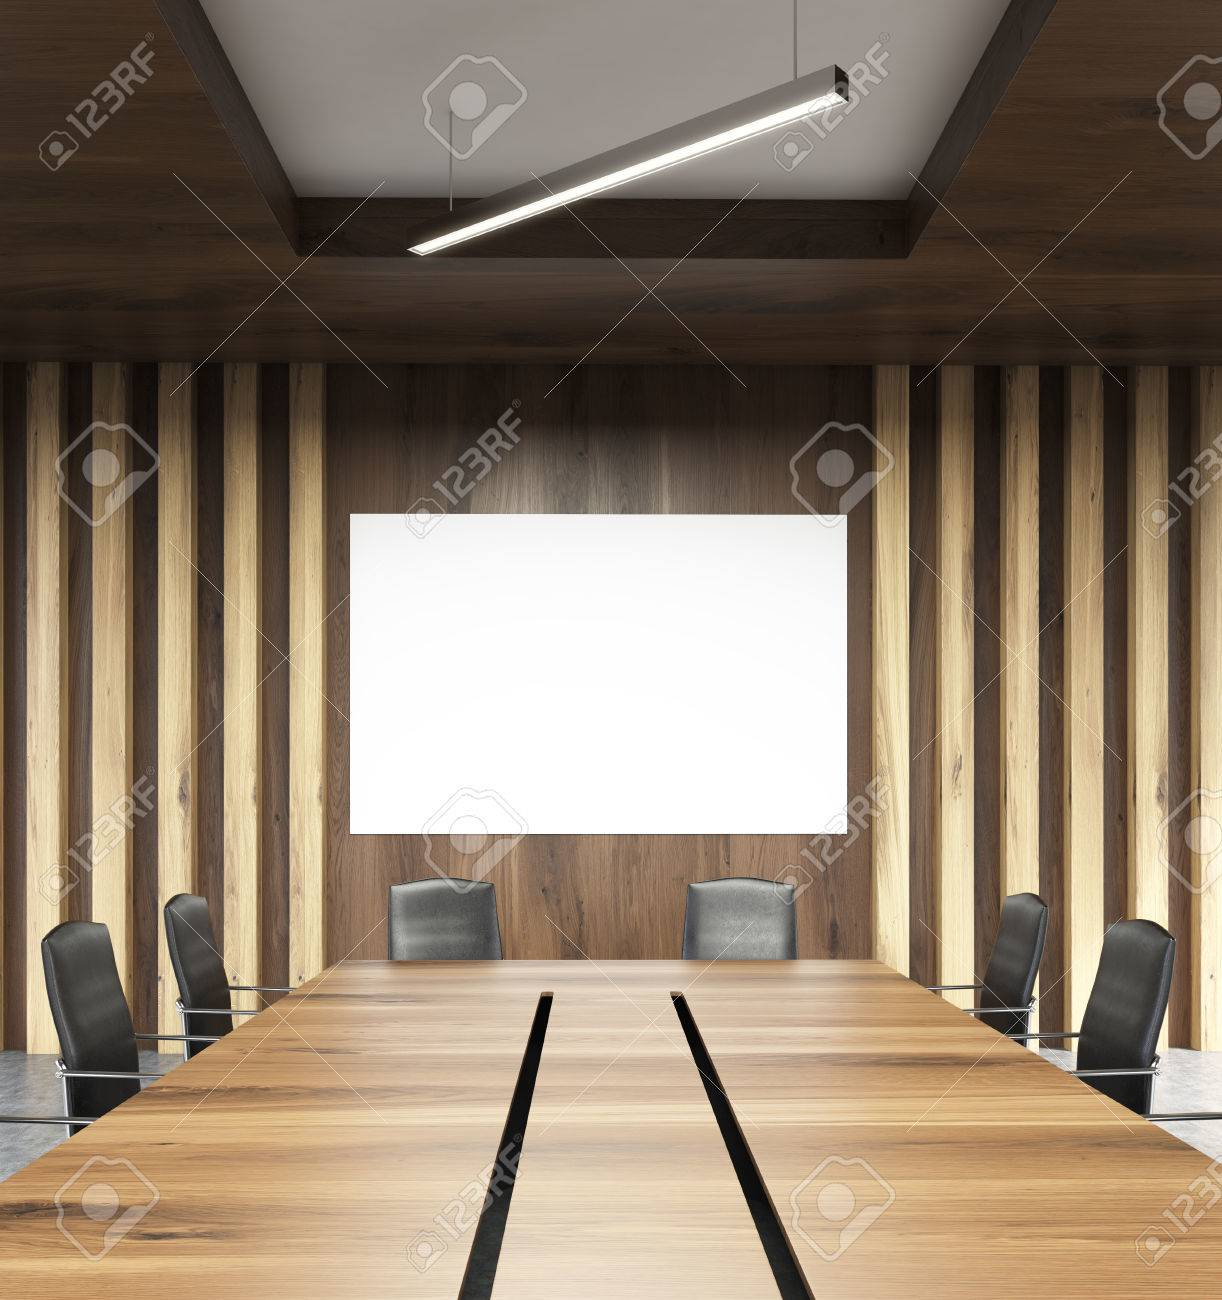 Closeup Of Table In Conference Room Interior With Blank Whiteboard - Whiteboard conference table